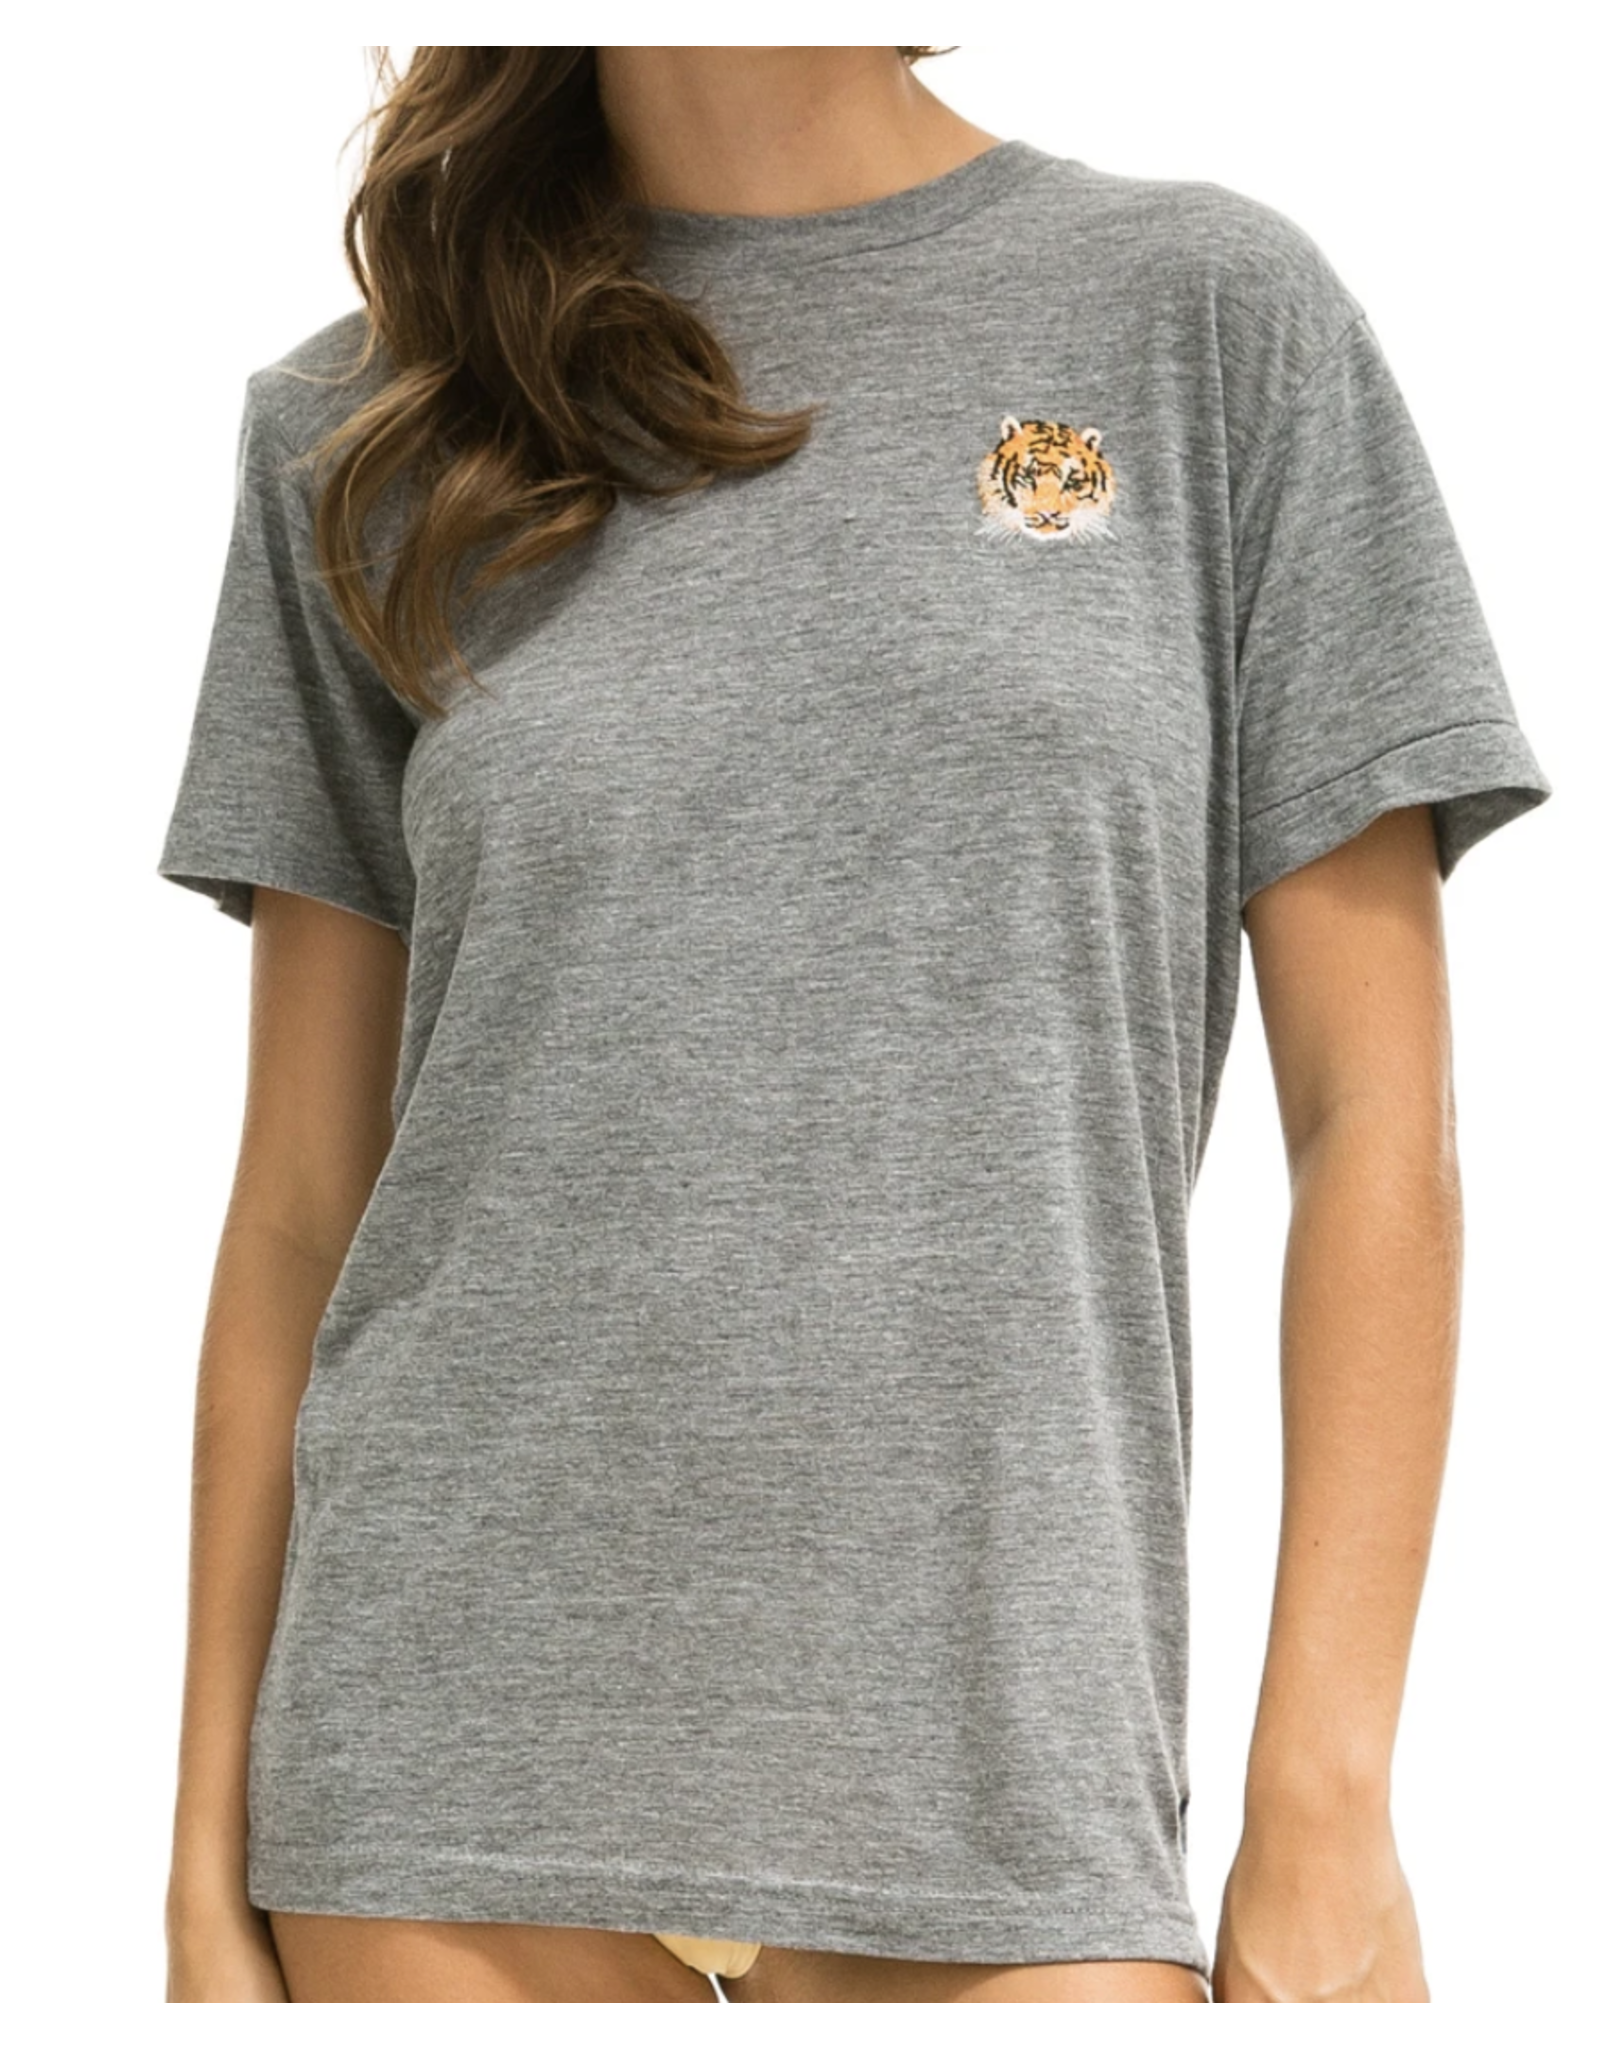 Aviator Nation Tiger Embroidery Tee